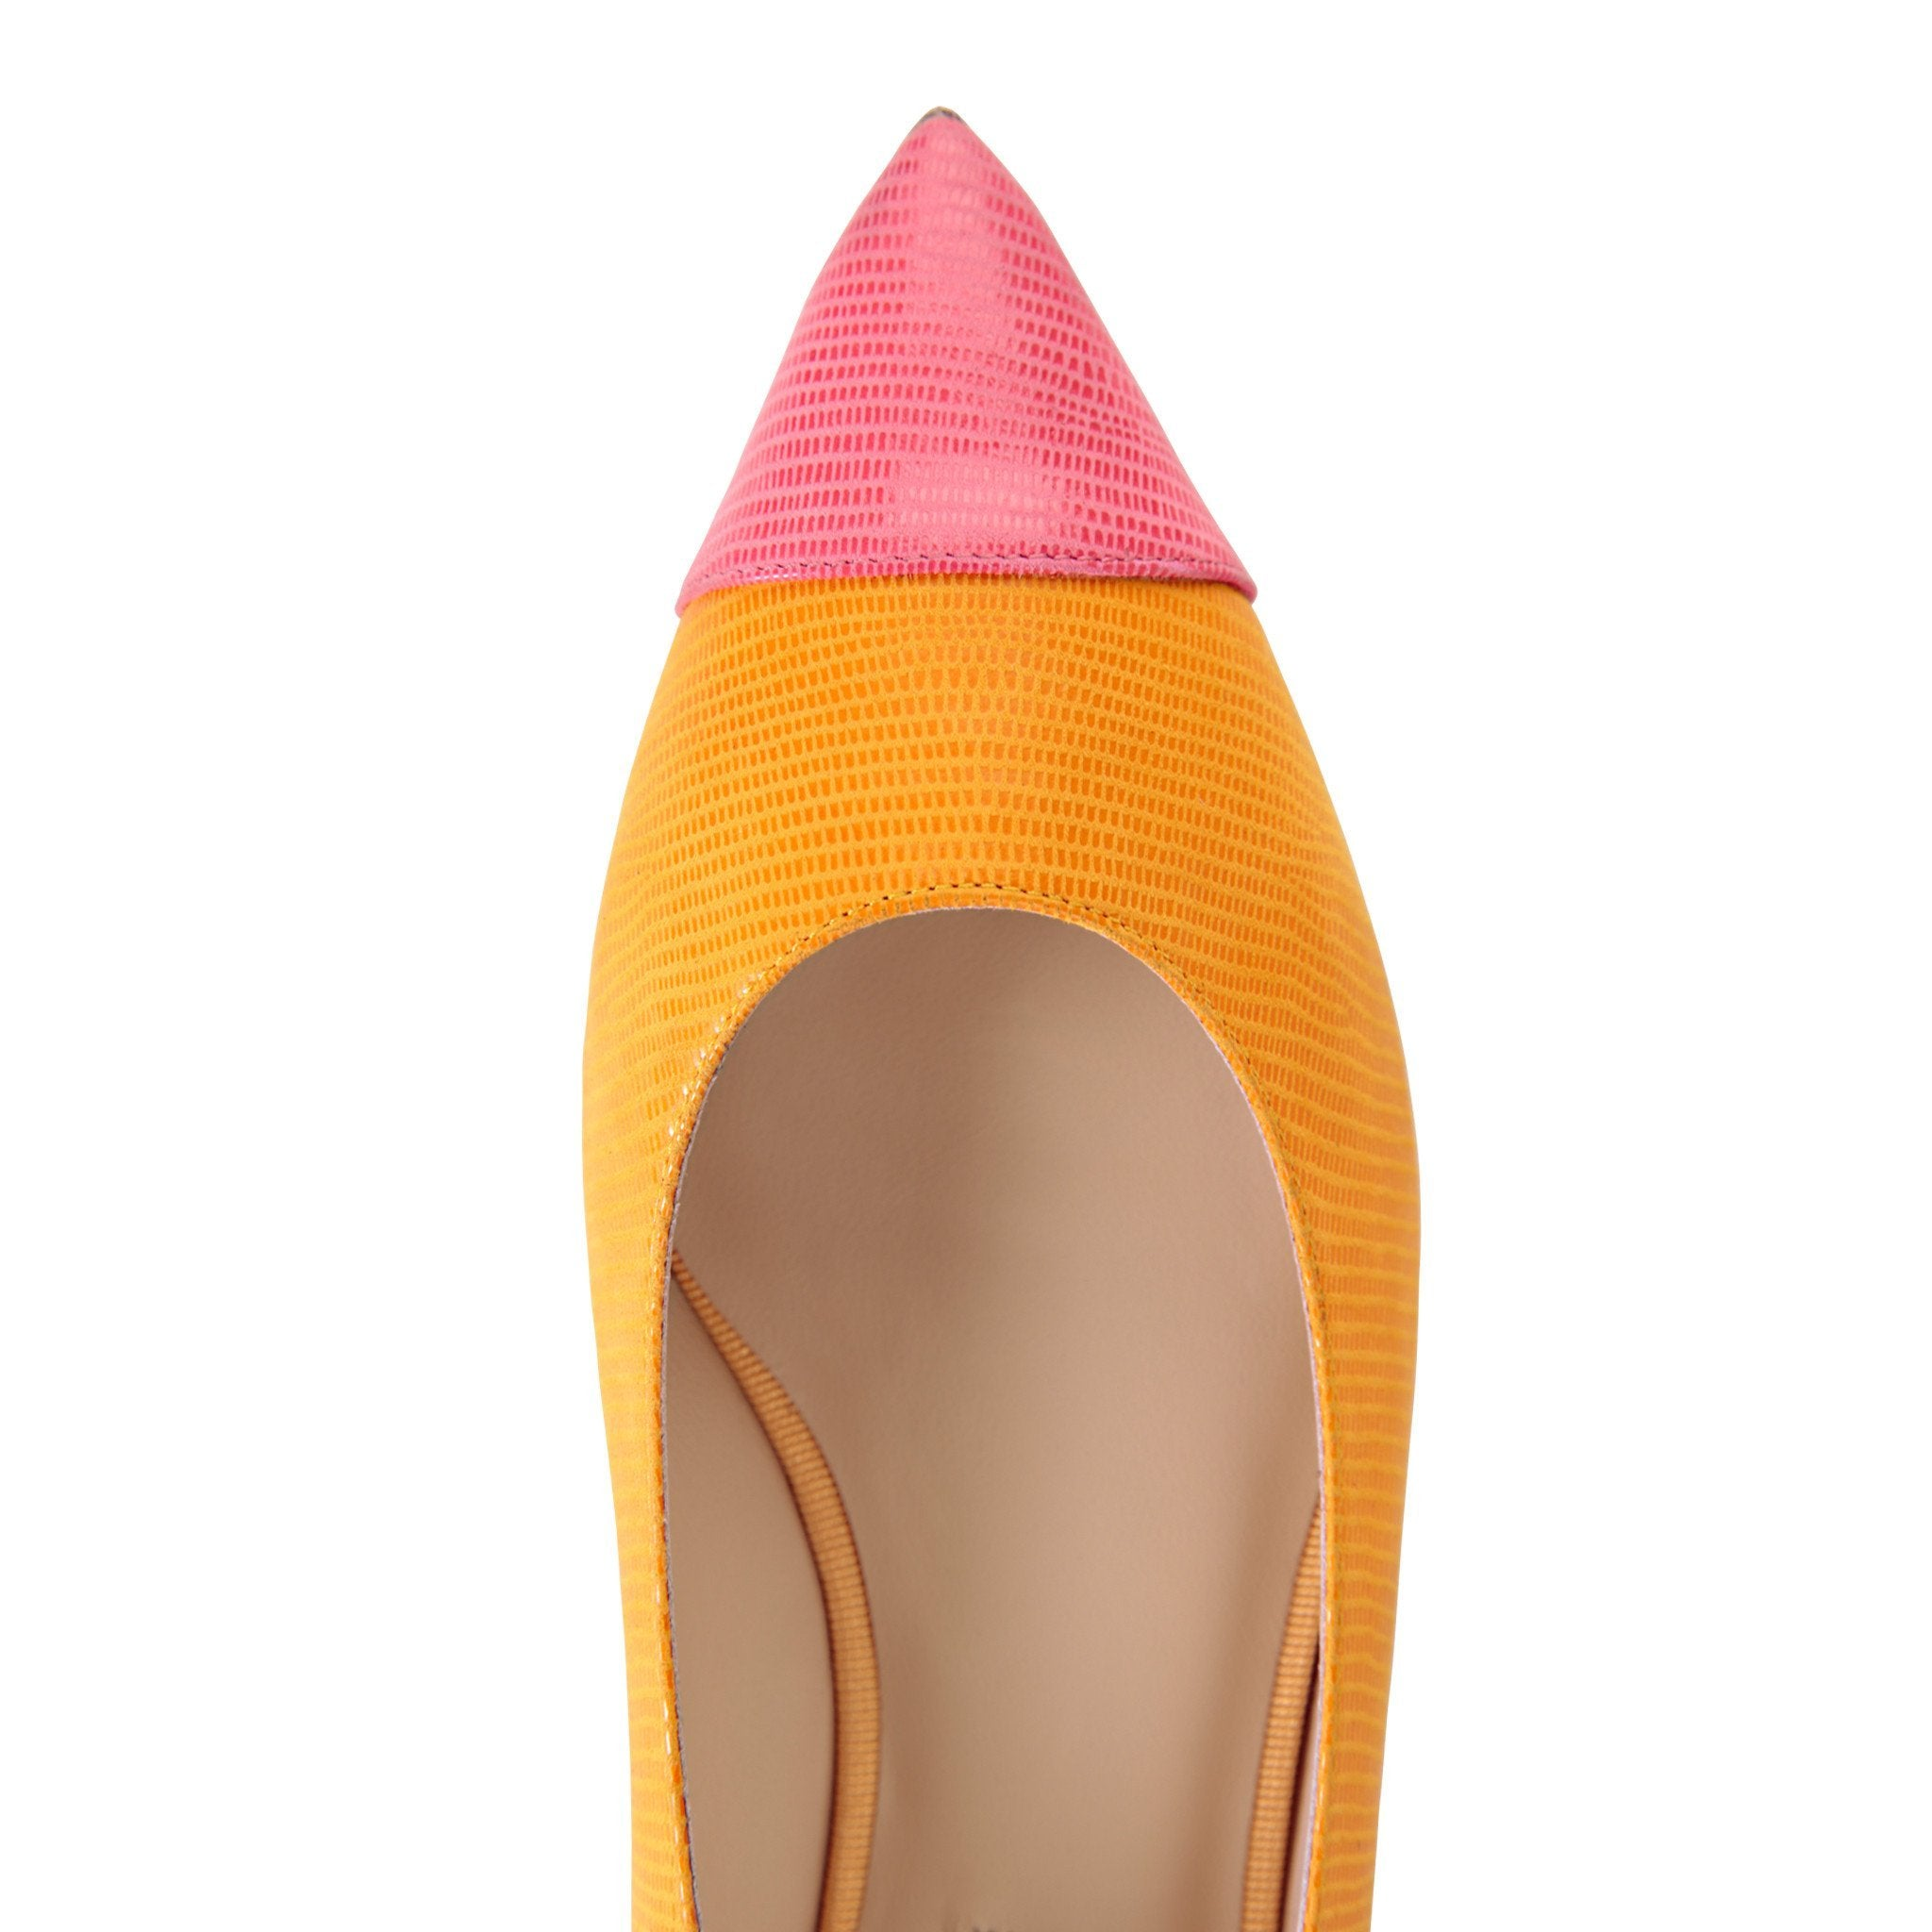 COMO - Varanus Mandarin + Epiphany Pink, VIAJIYU - Women's Hand Made Sustainable Luxury Shoes. Made in Italy. Made to Order.